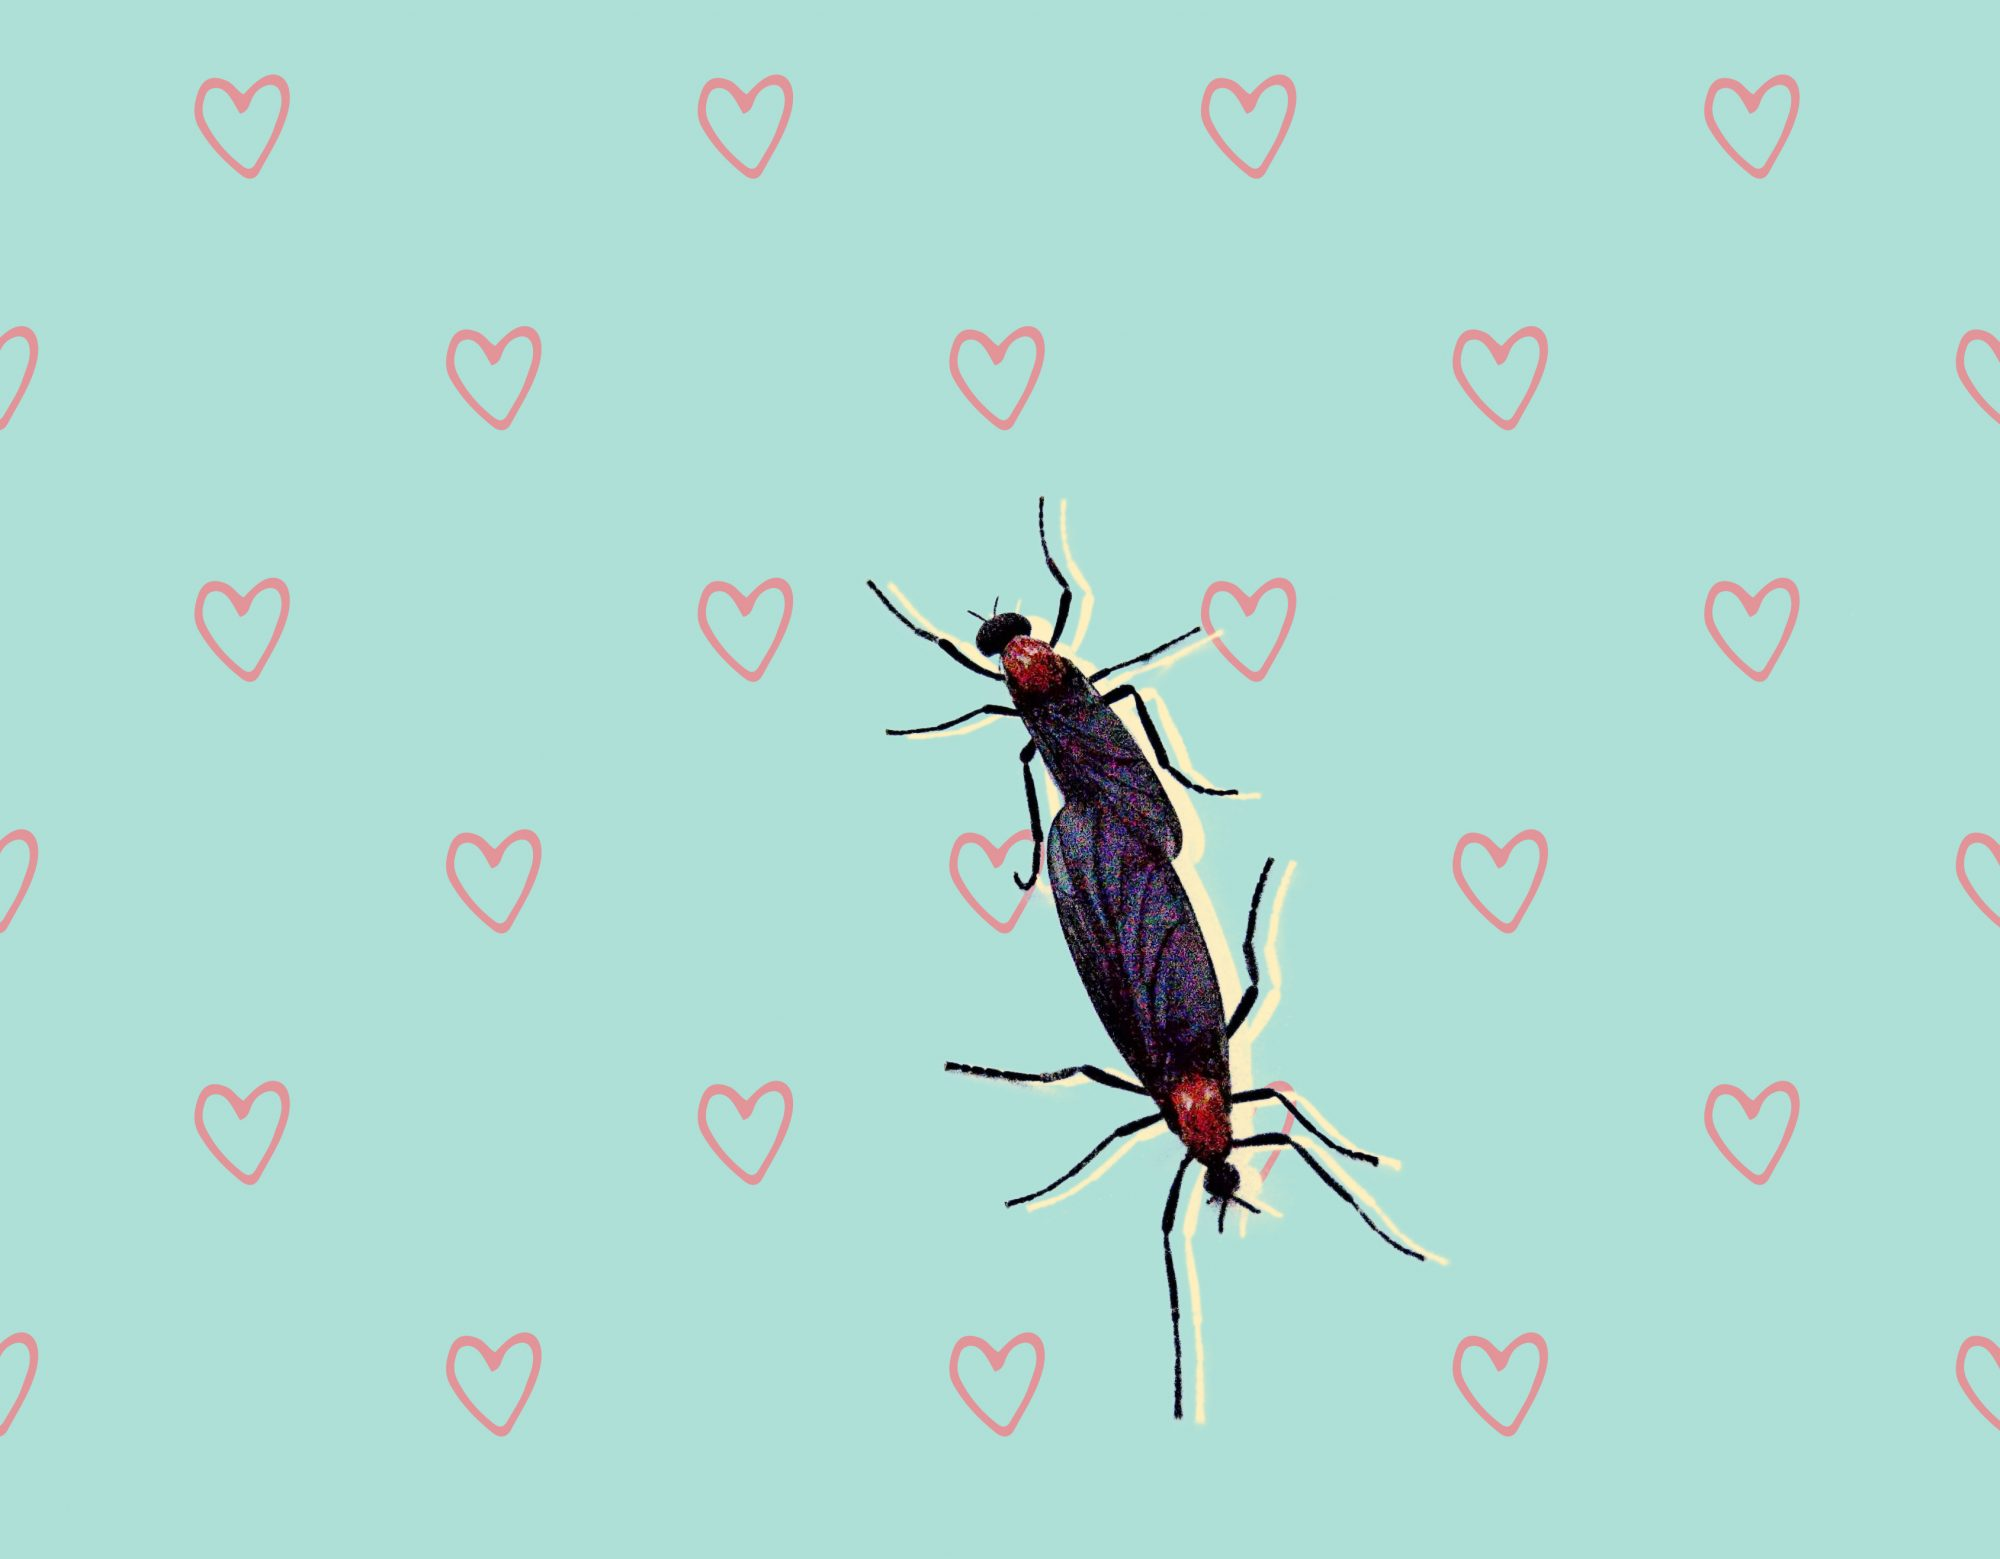 Lovebug Insect Season is Upon Us—Here's What You Need to Know